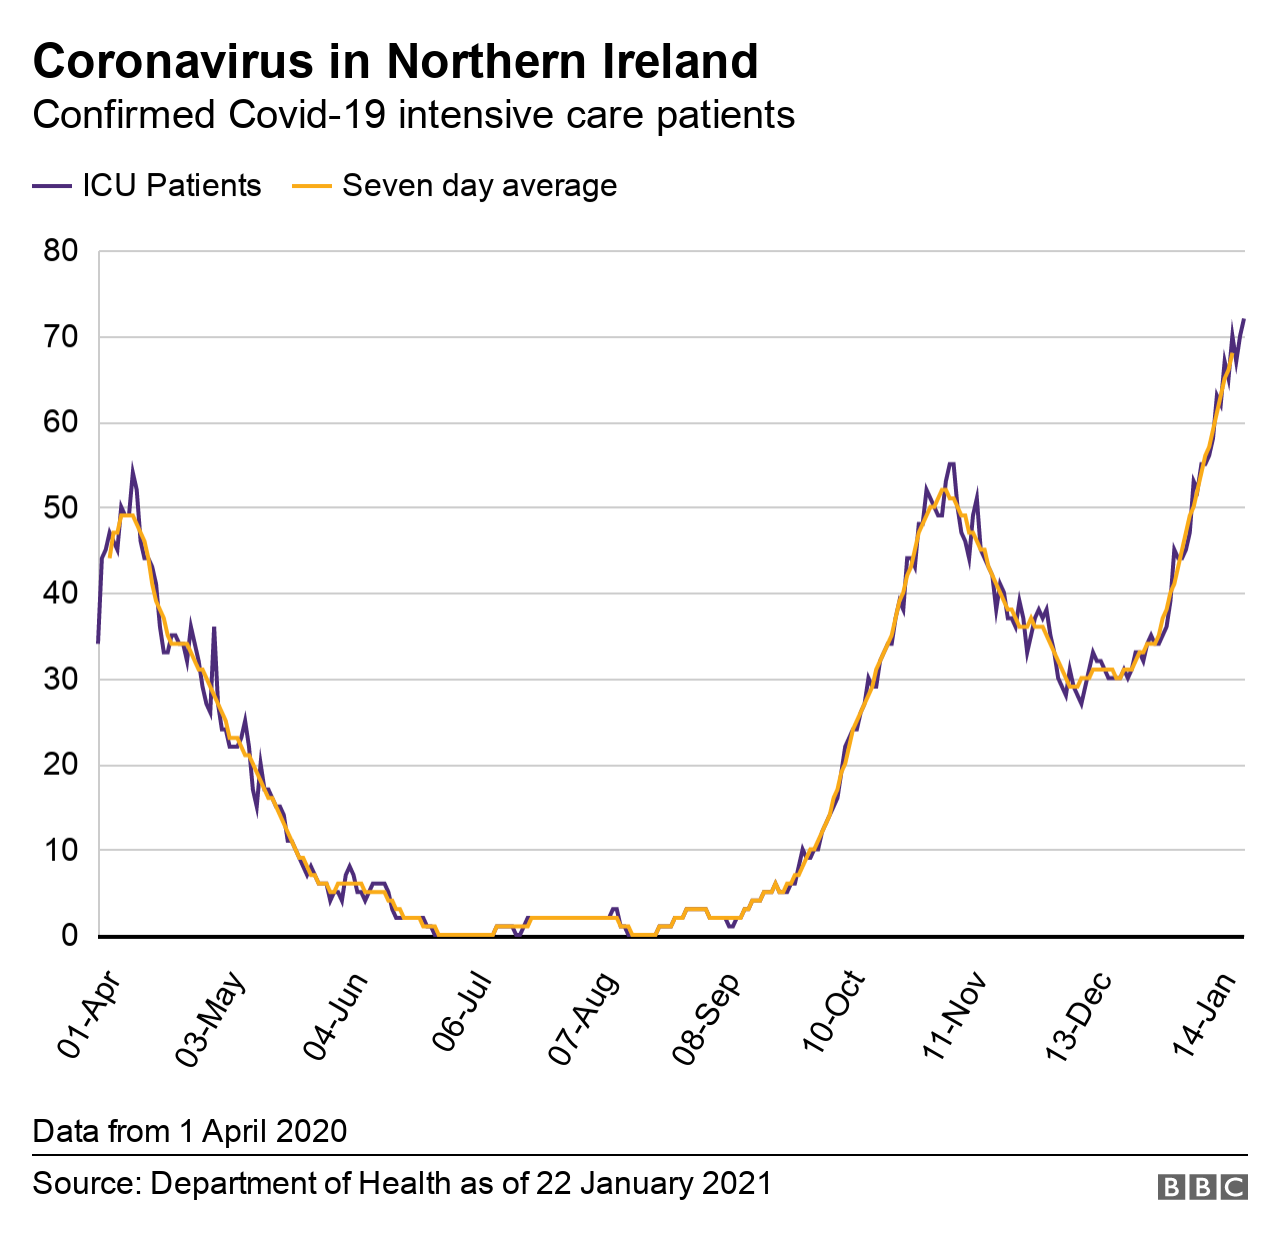 A graph showing the number of Covid-19-related hospital inpatients in Northern Ireland